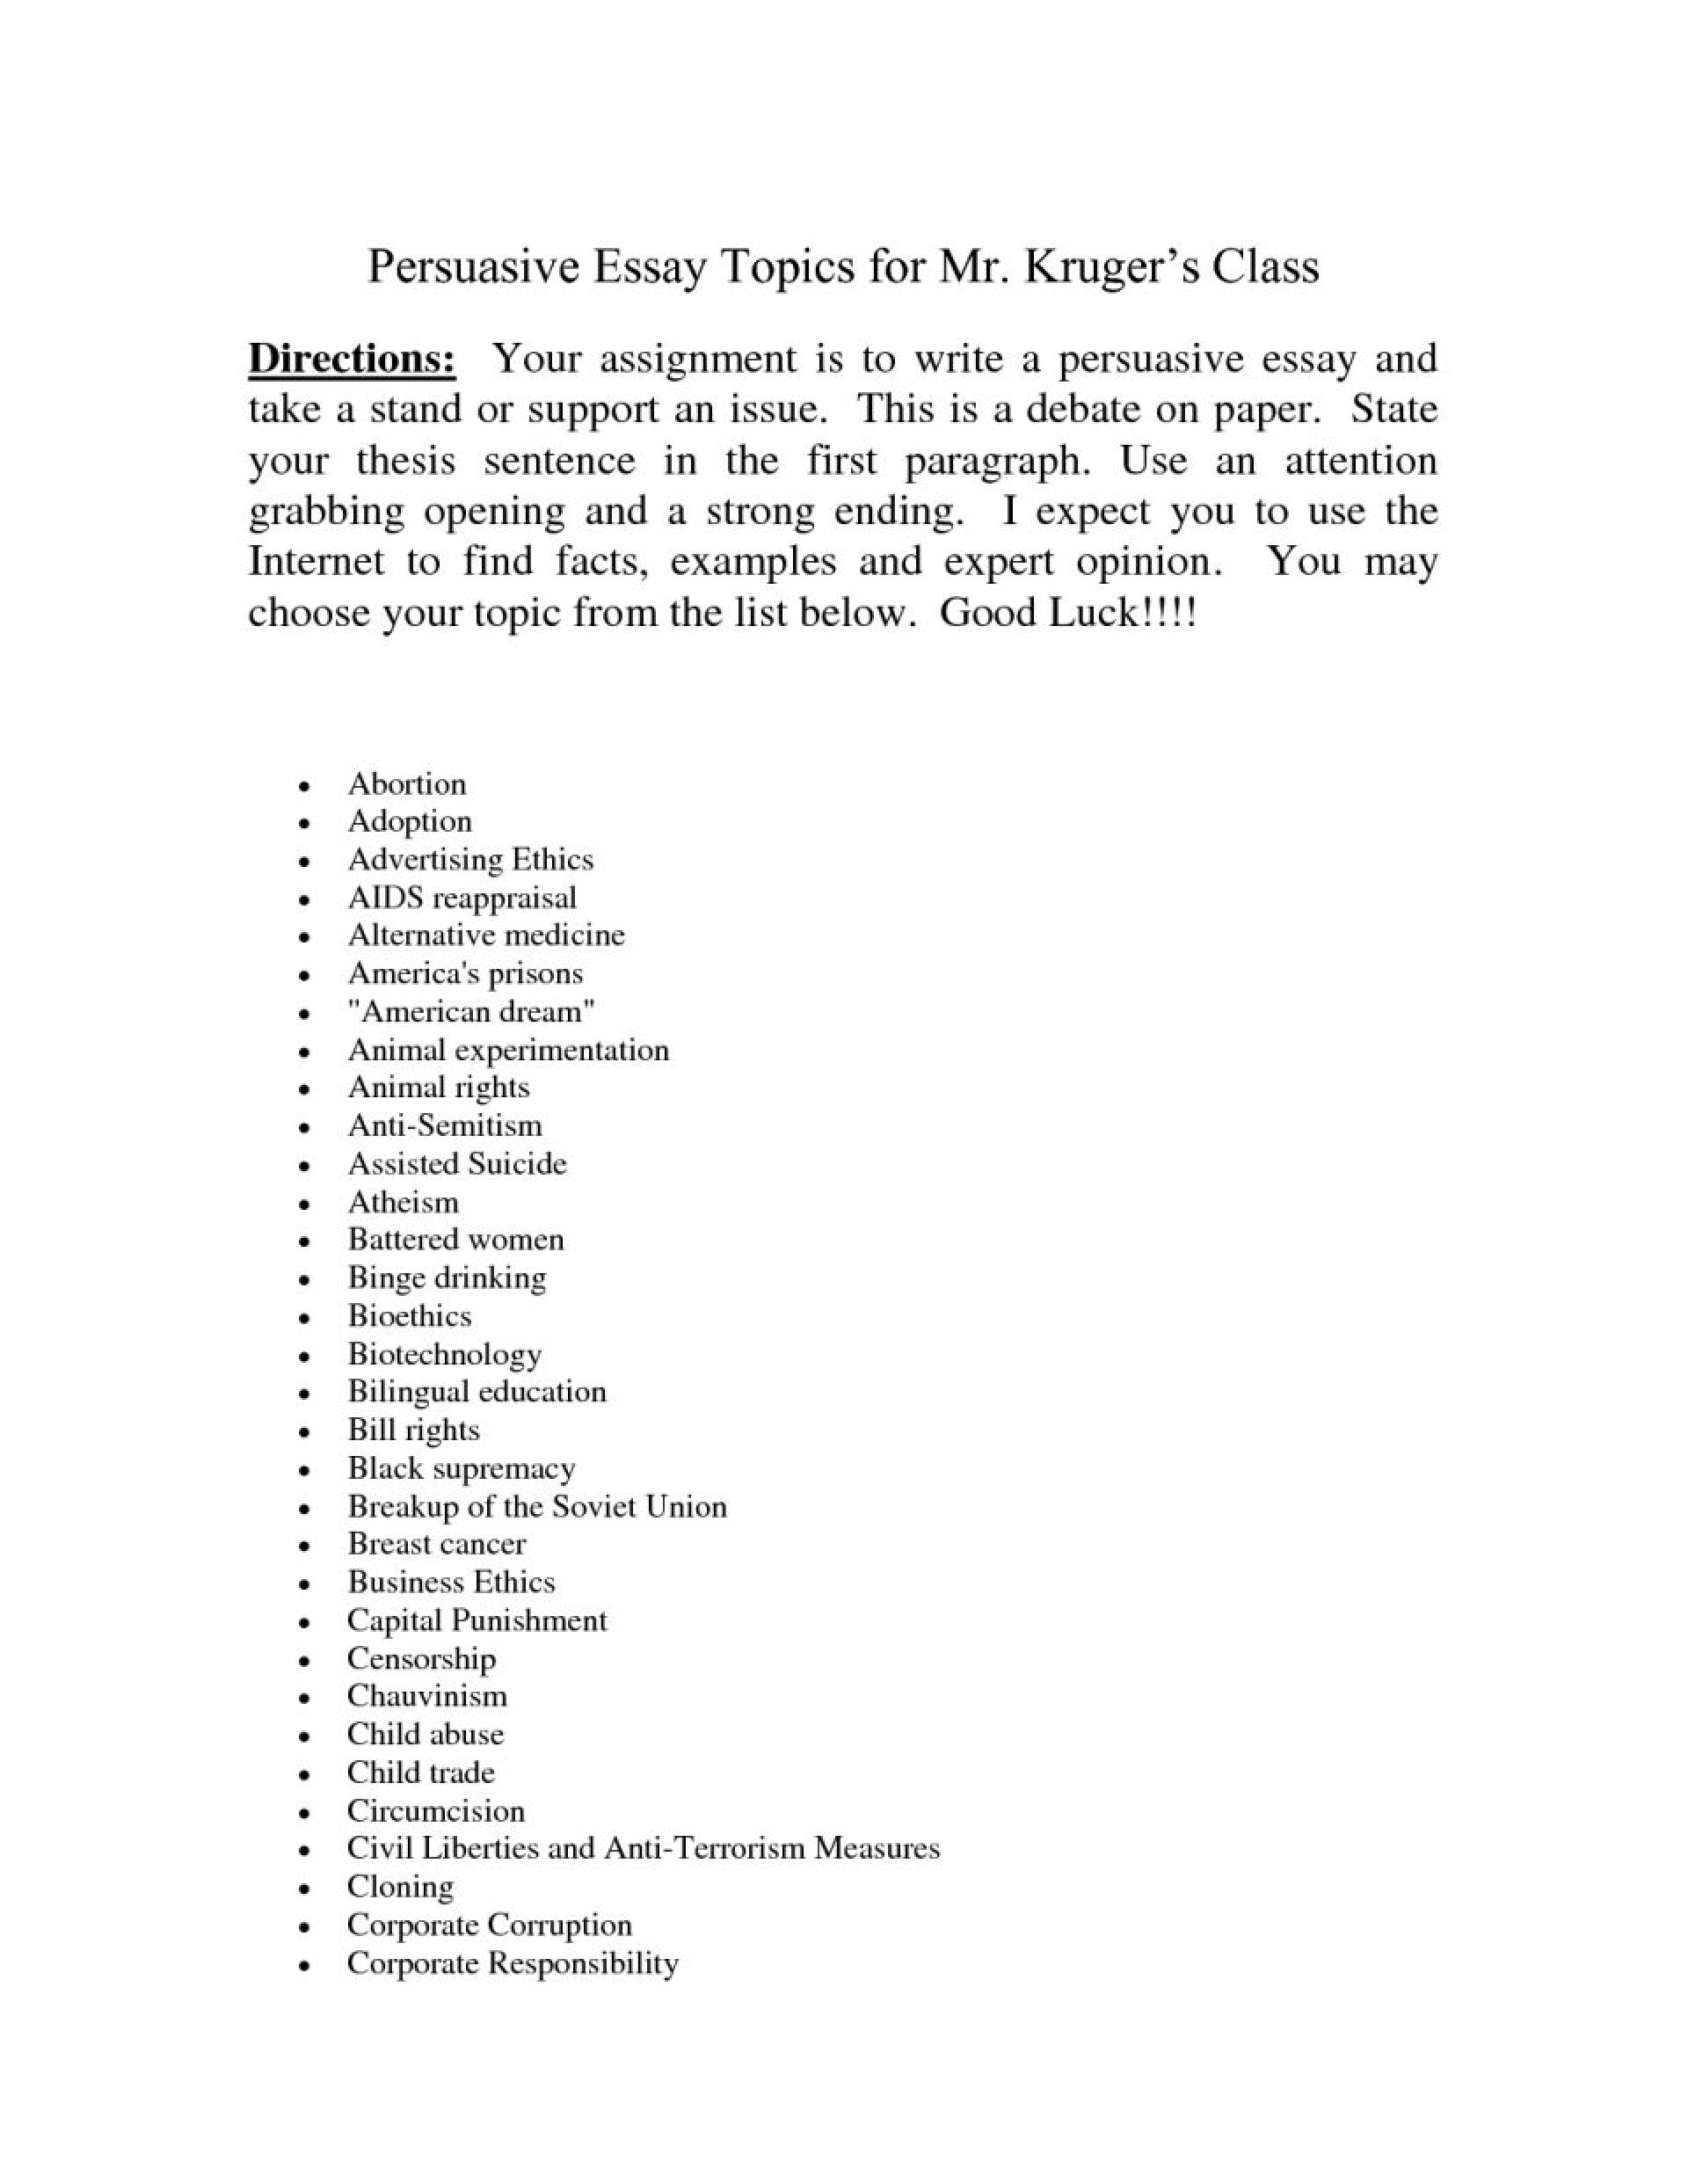 001 Research Paper Topics Topic For Essay Barca Fontanacountryinn Within Good Persuasive Narrative To Write Abo Easy About Personal Descriptive Informative Formidable 2017 College In Computer Science 1920